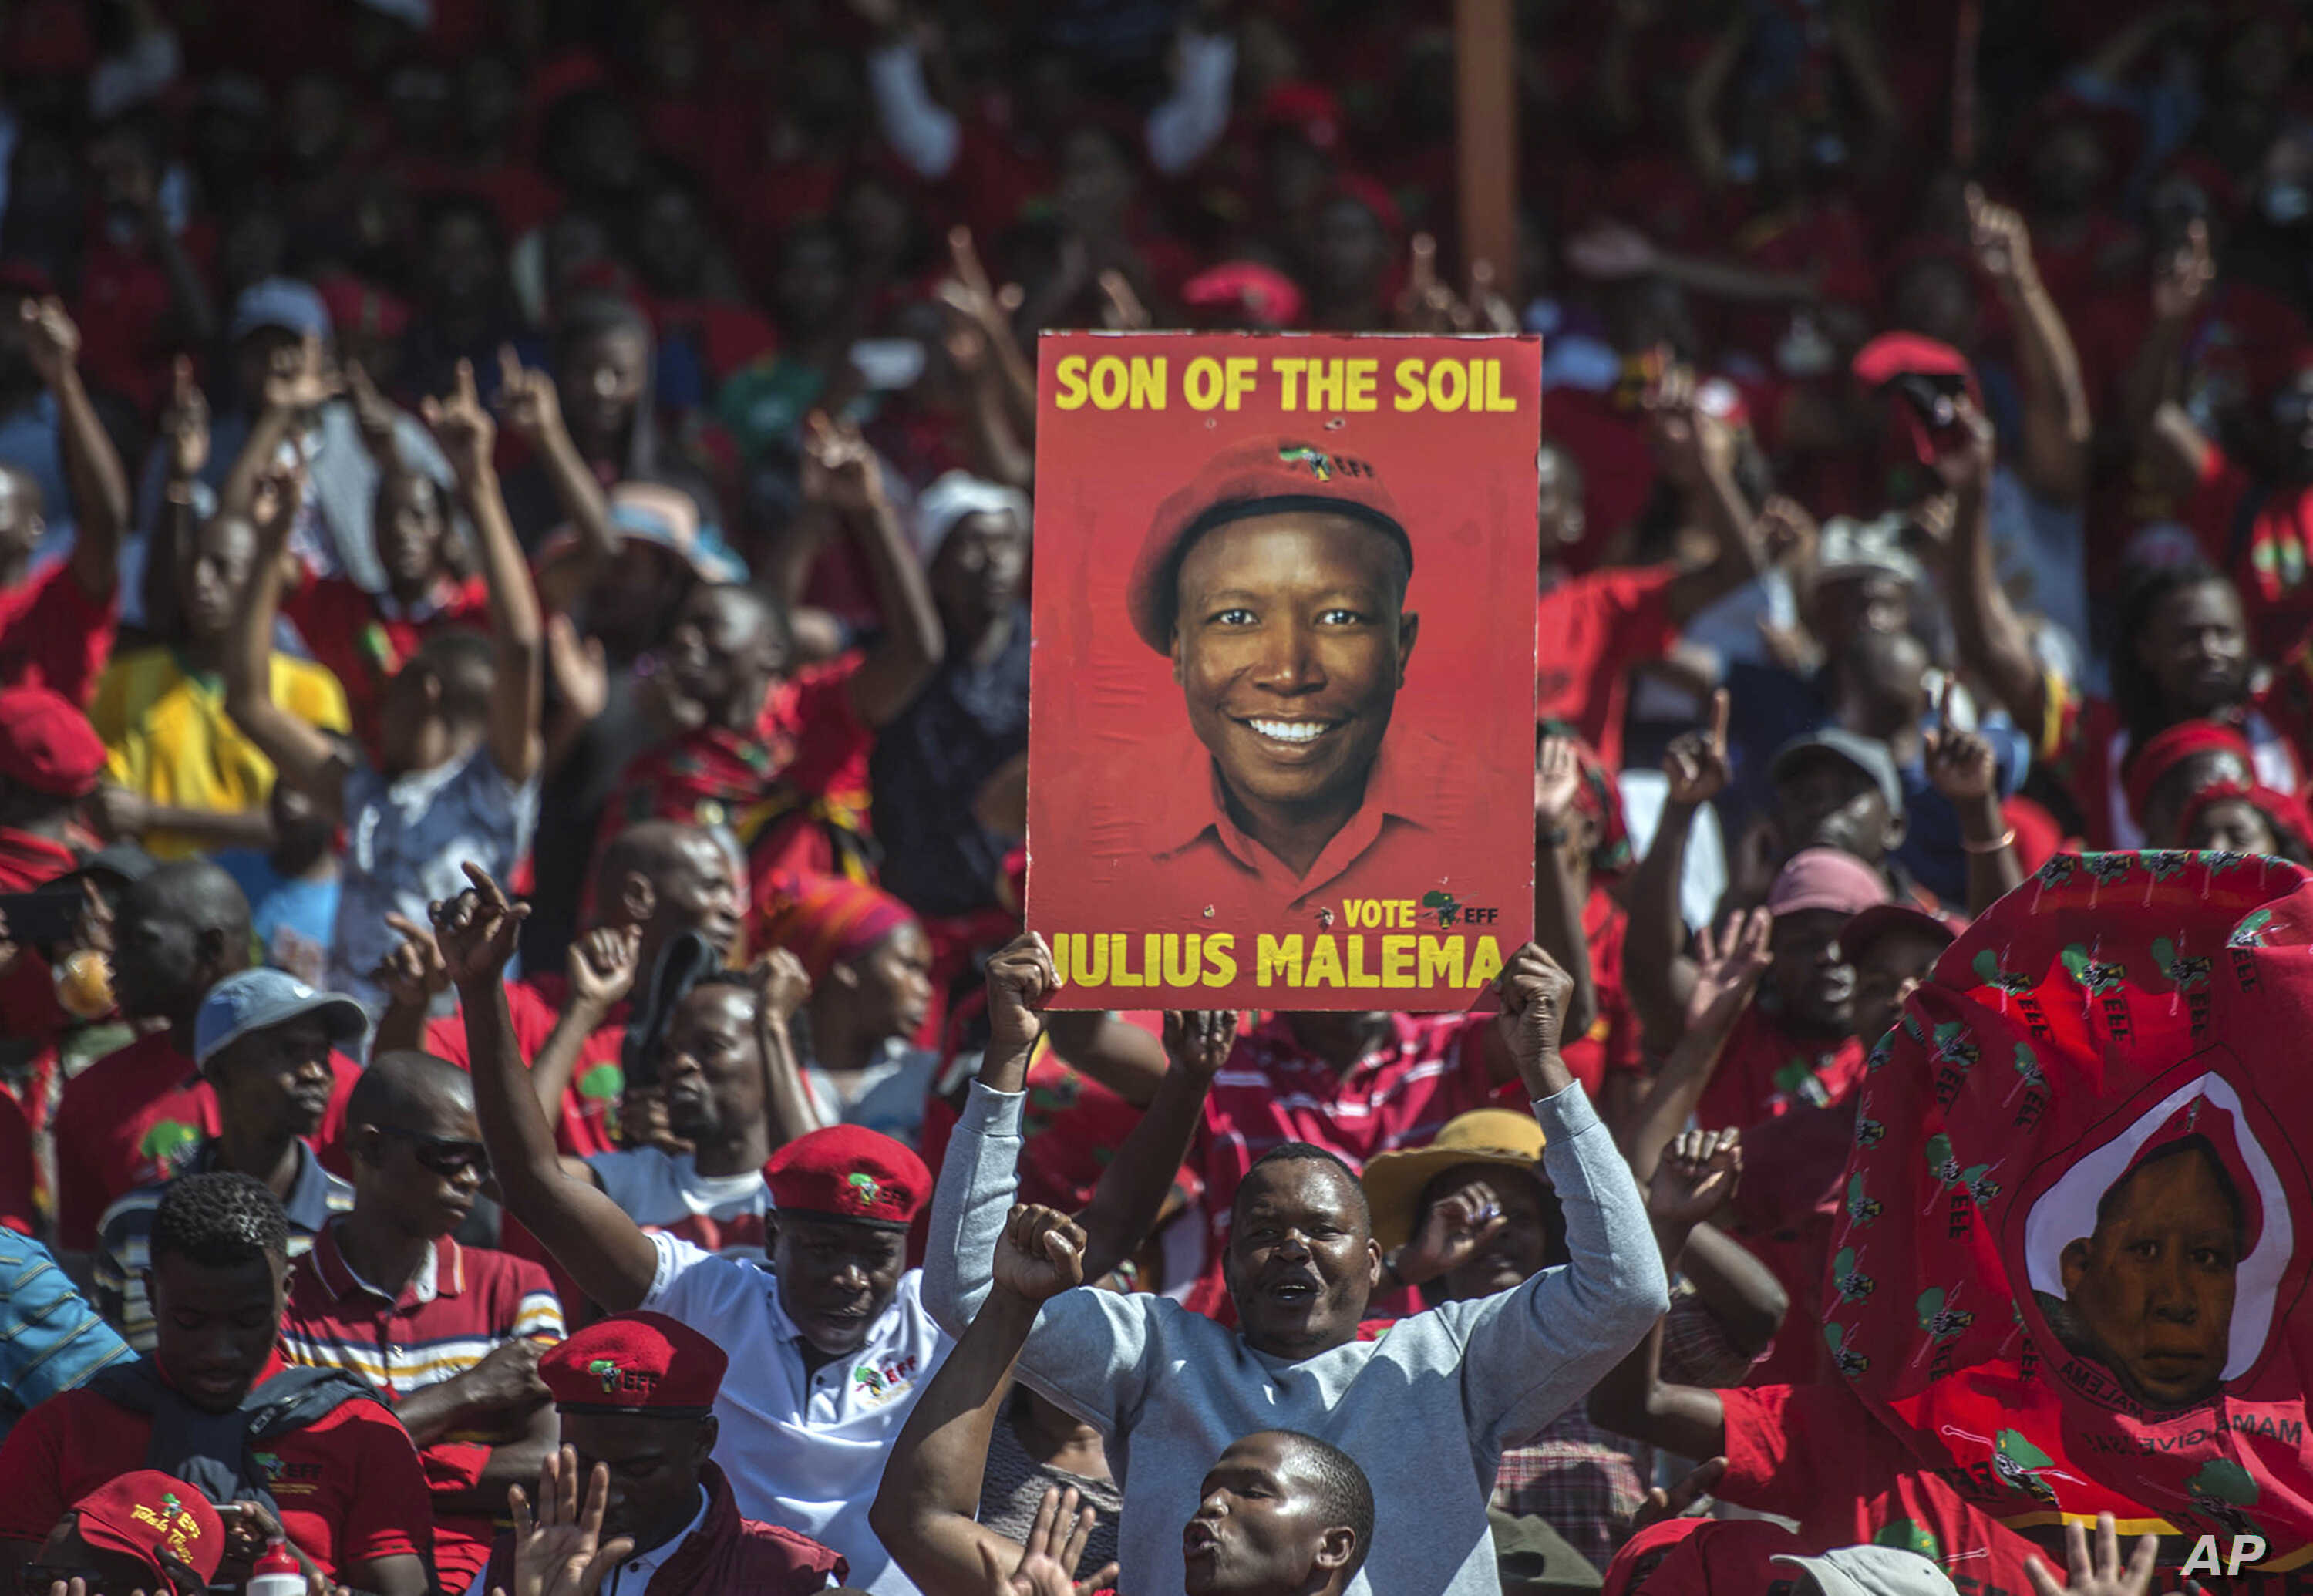 Supporters of the Economic Freedom Fighters (EFF) party hold up an election poster of leader Julius Malema during a May Day Rally in Alexandra Township, Johannesburg, May 1, 2019.